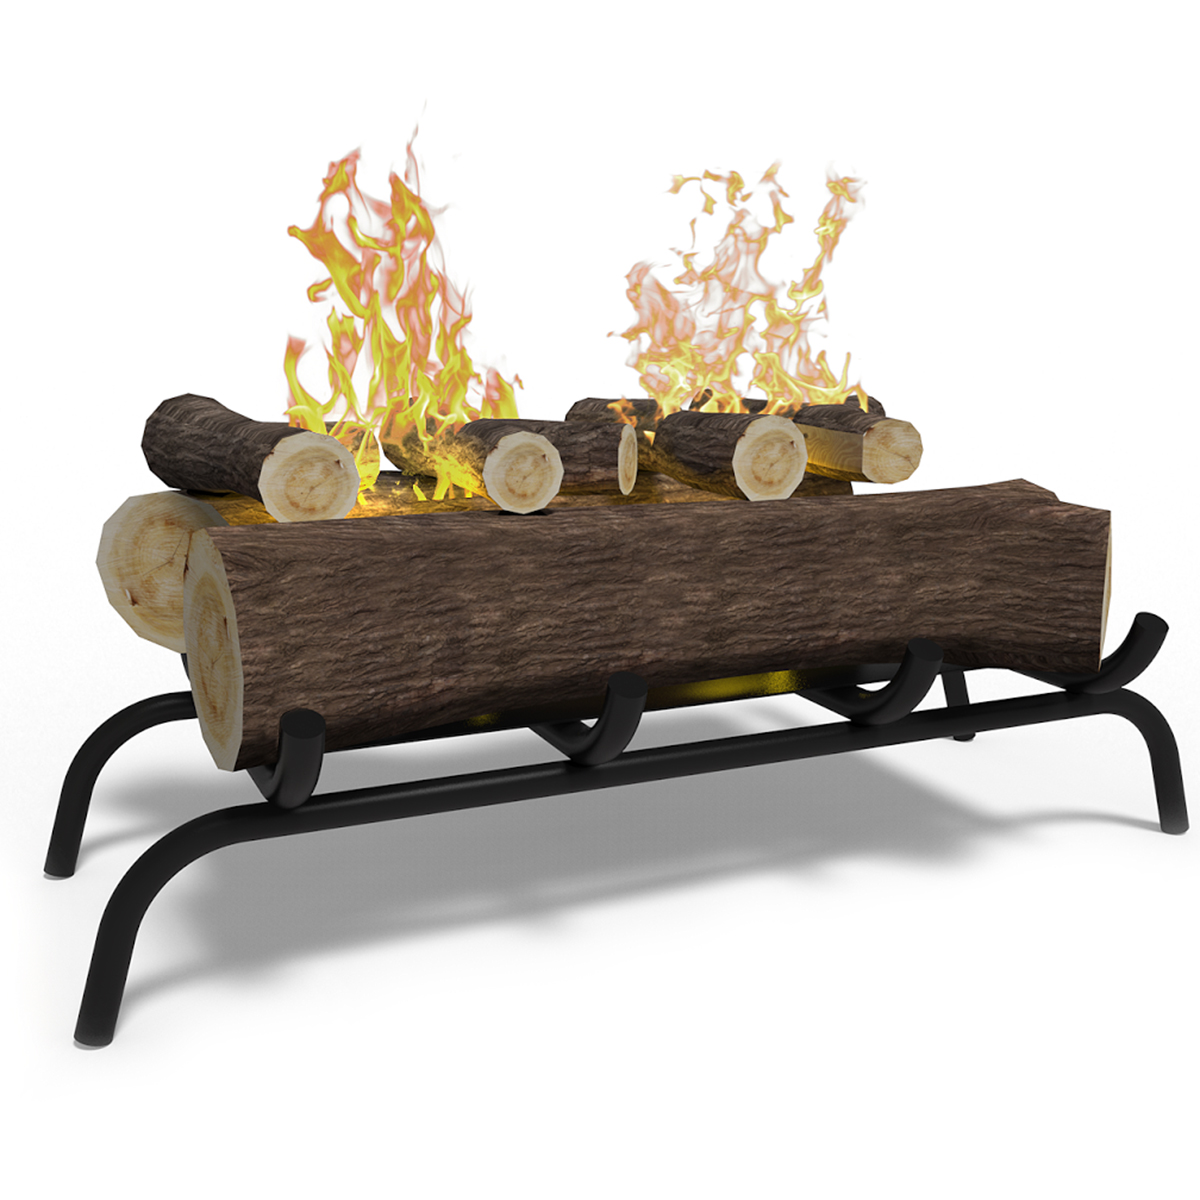 18 inch convert to ethanol fireplace log set with burner insert from rh regalflame com